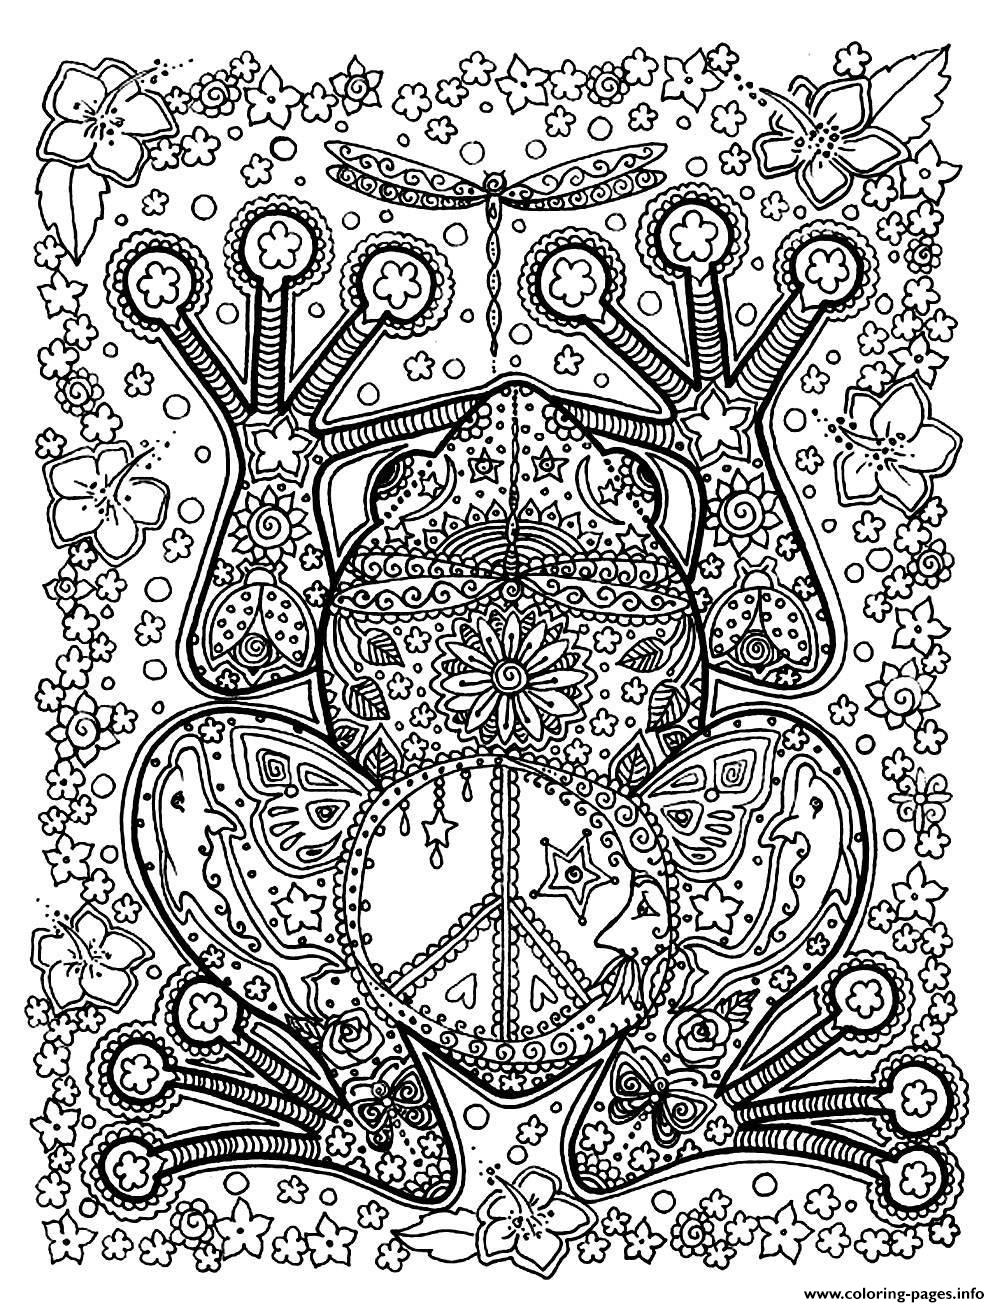 Adult Animals Big Frog coloring pages